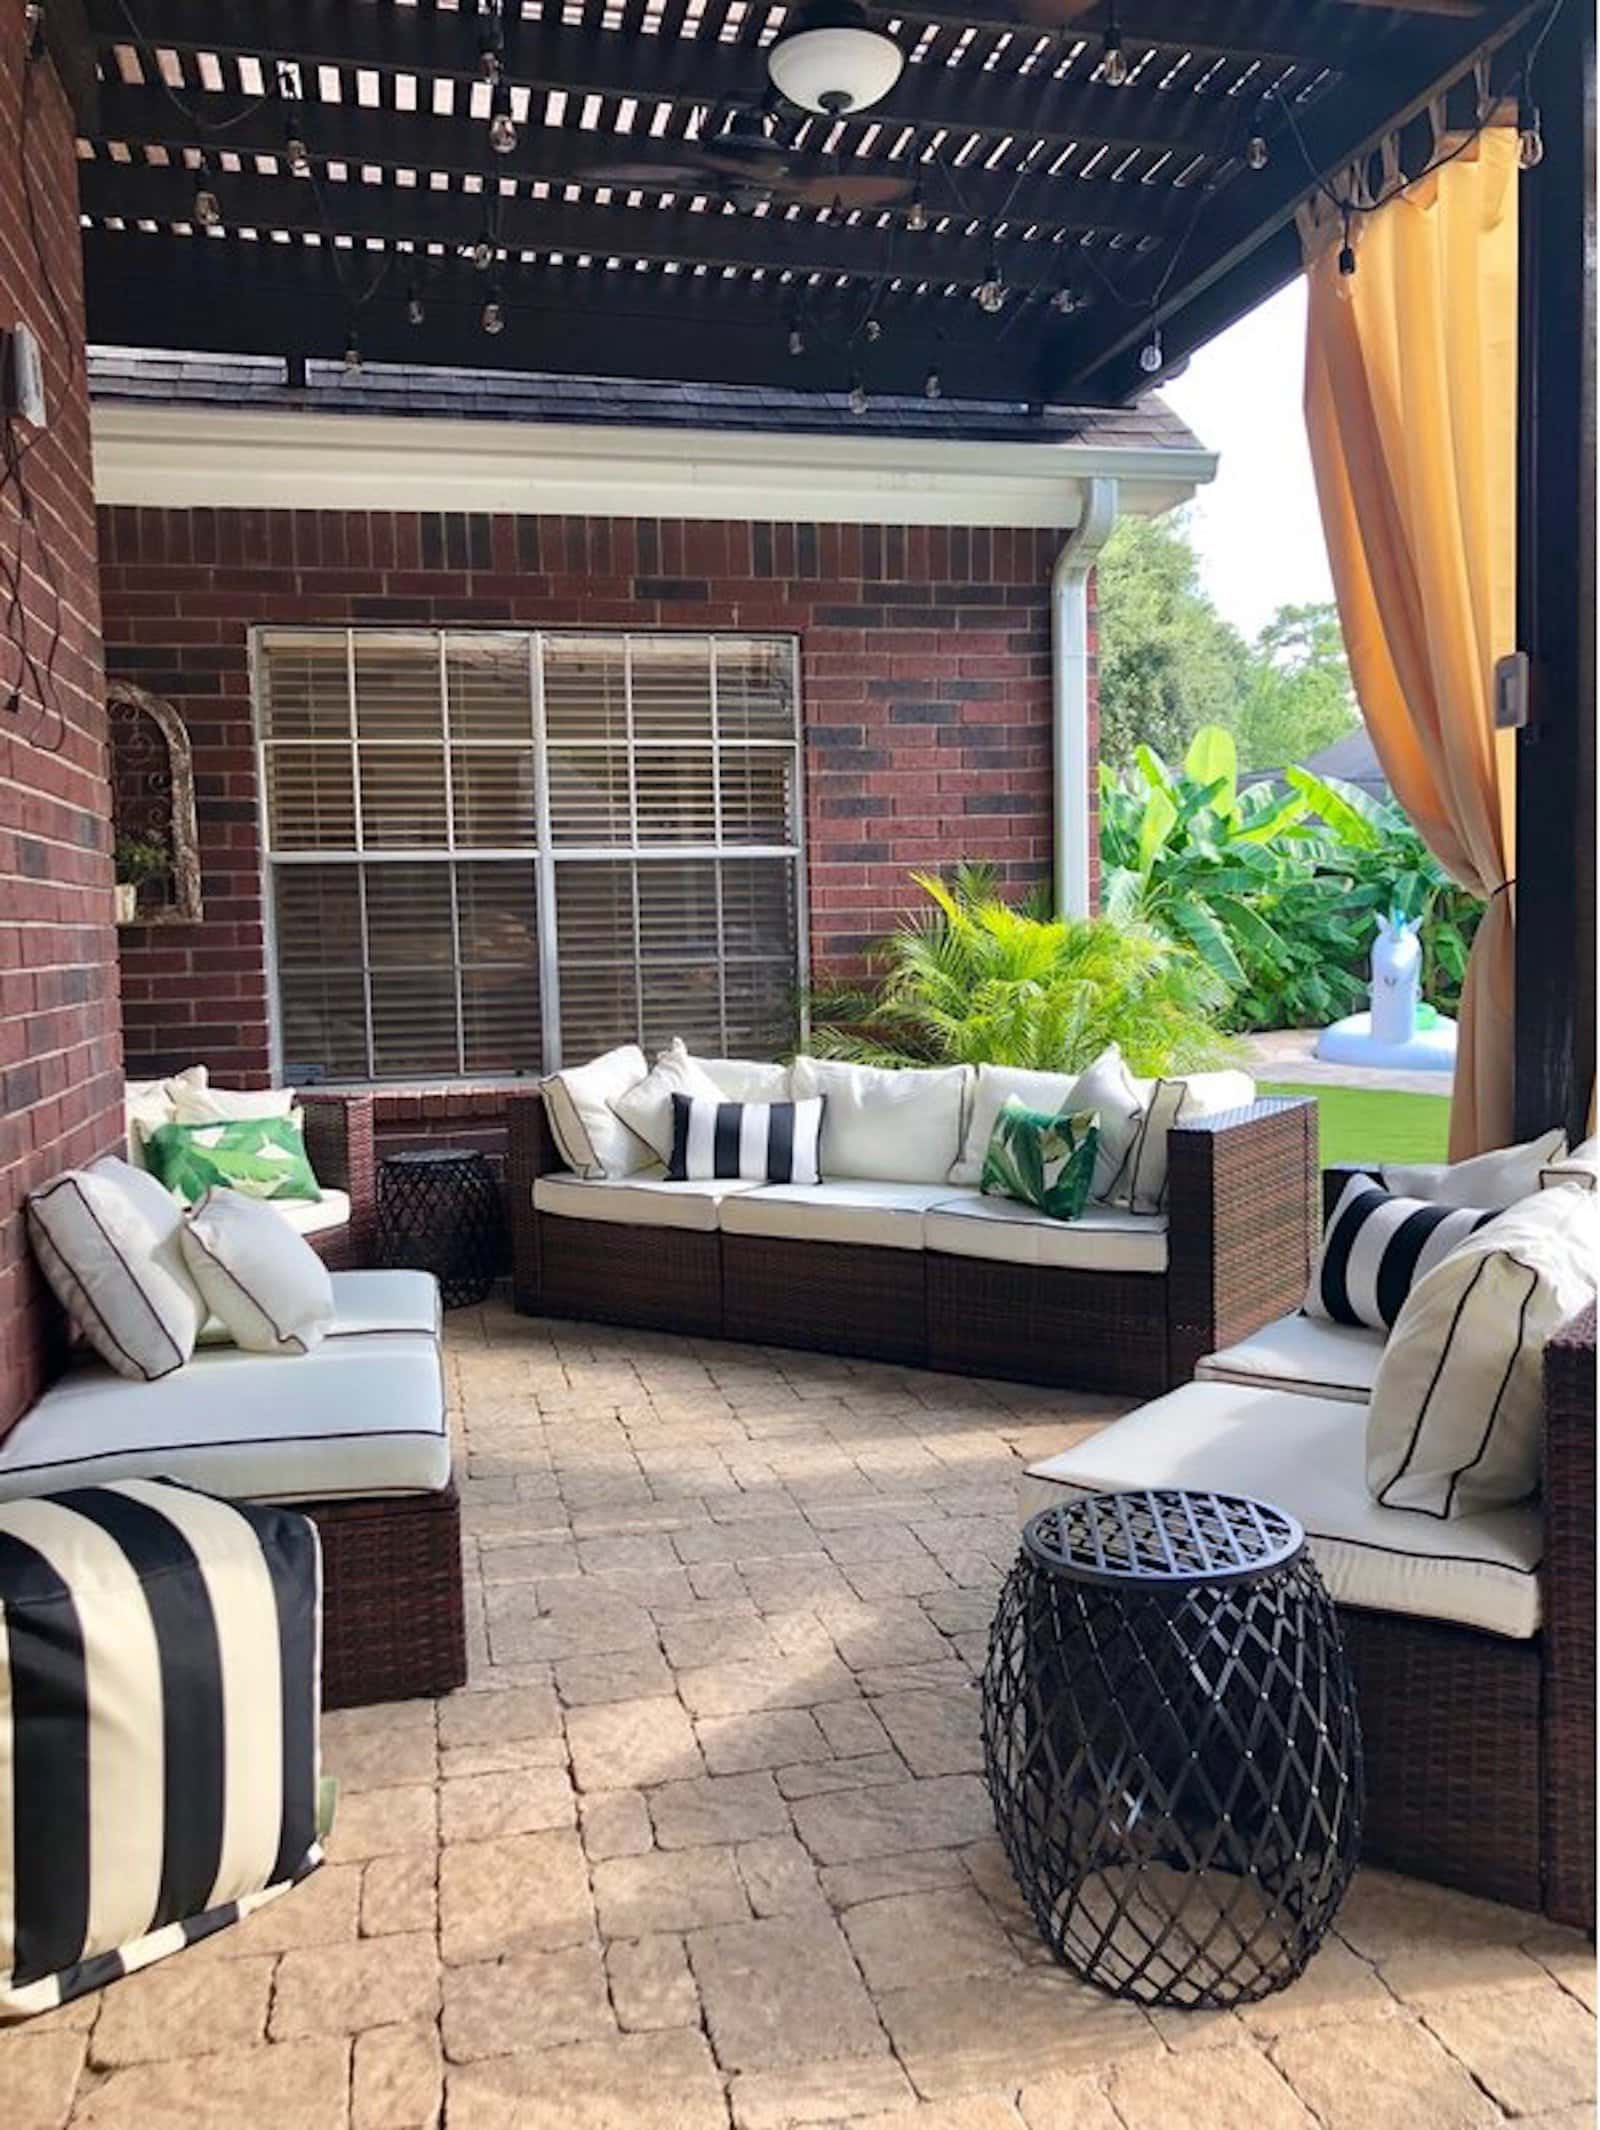 Create a Lovely Lattice Patio Covering